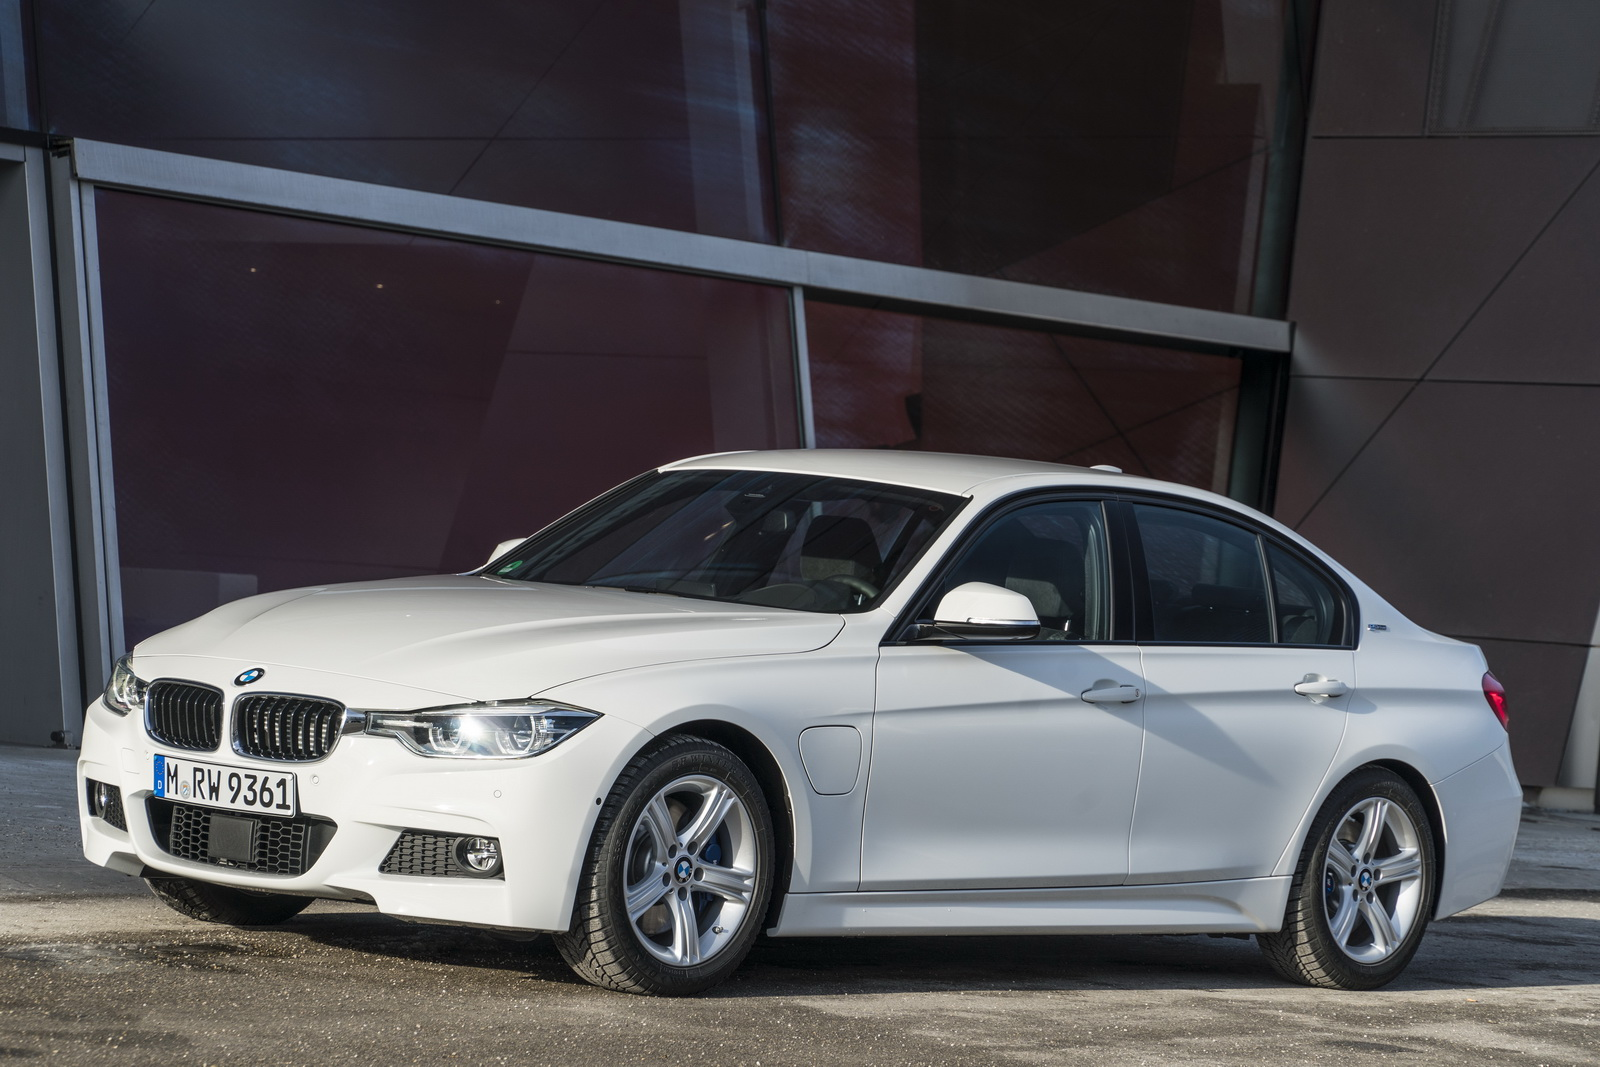 new bmw 330e iperformance phev priced from 44 695 but is it worth it over the 328i 328d. Black Bedroom Furniture Sets. Home Design Ideas